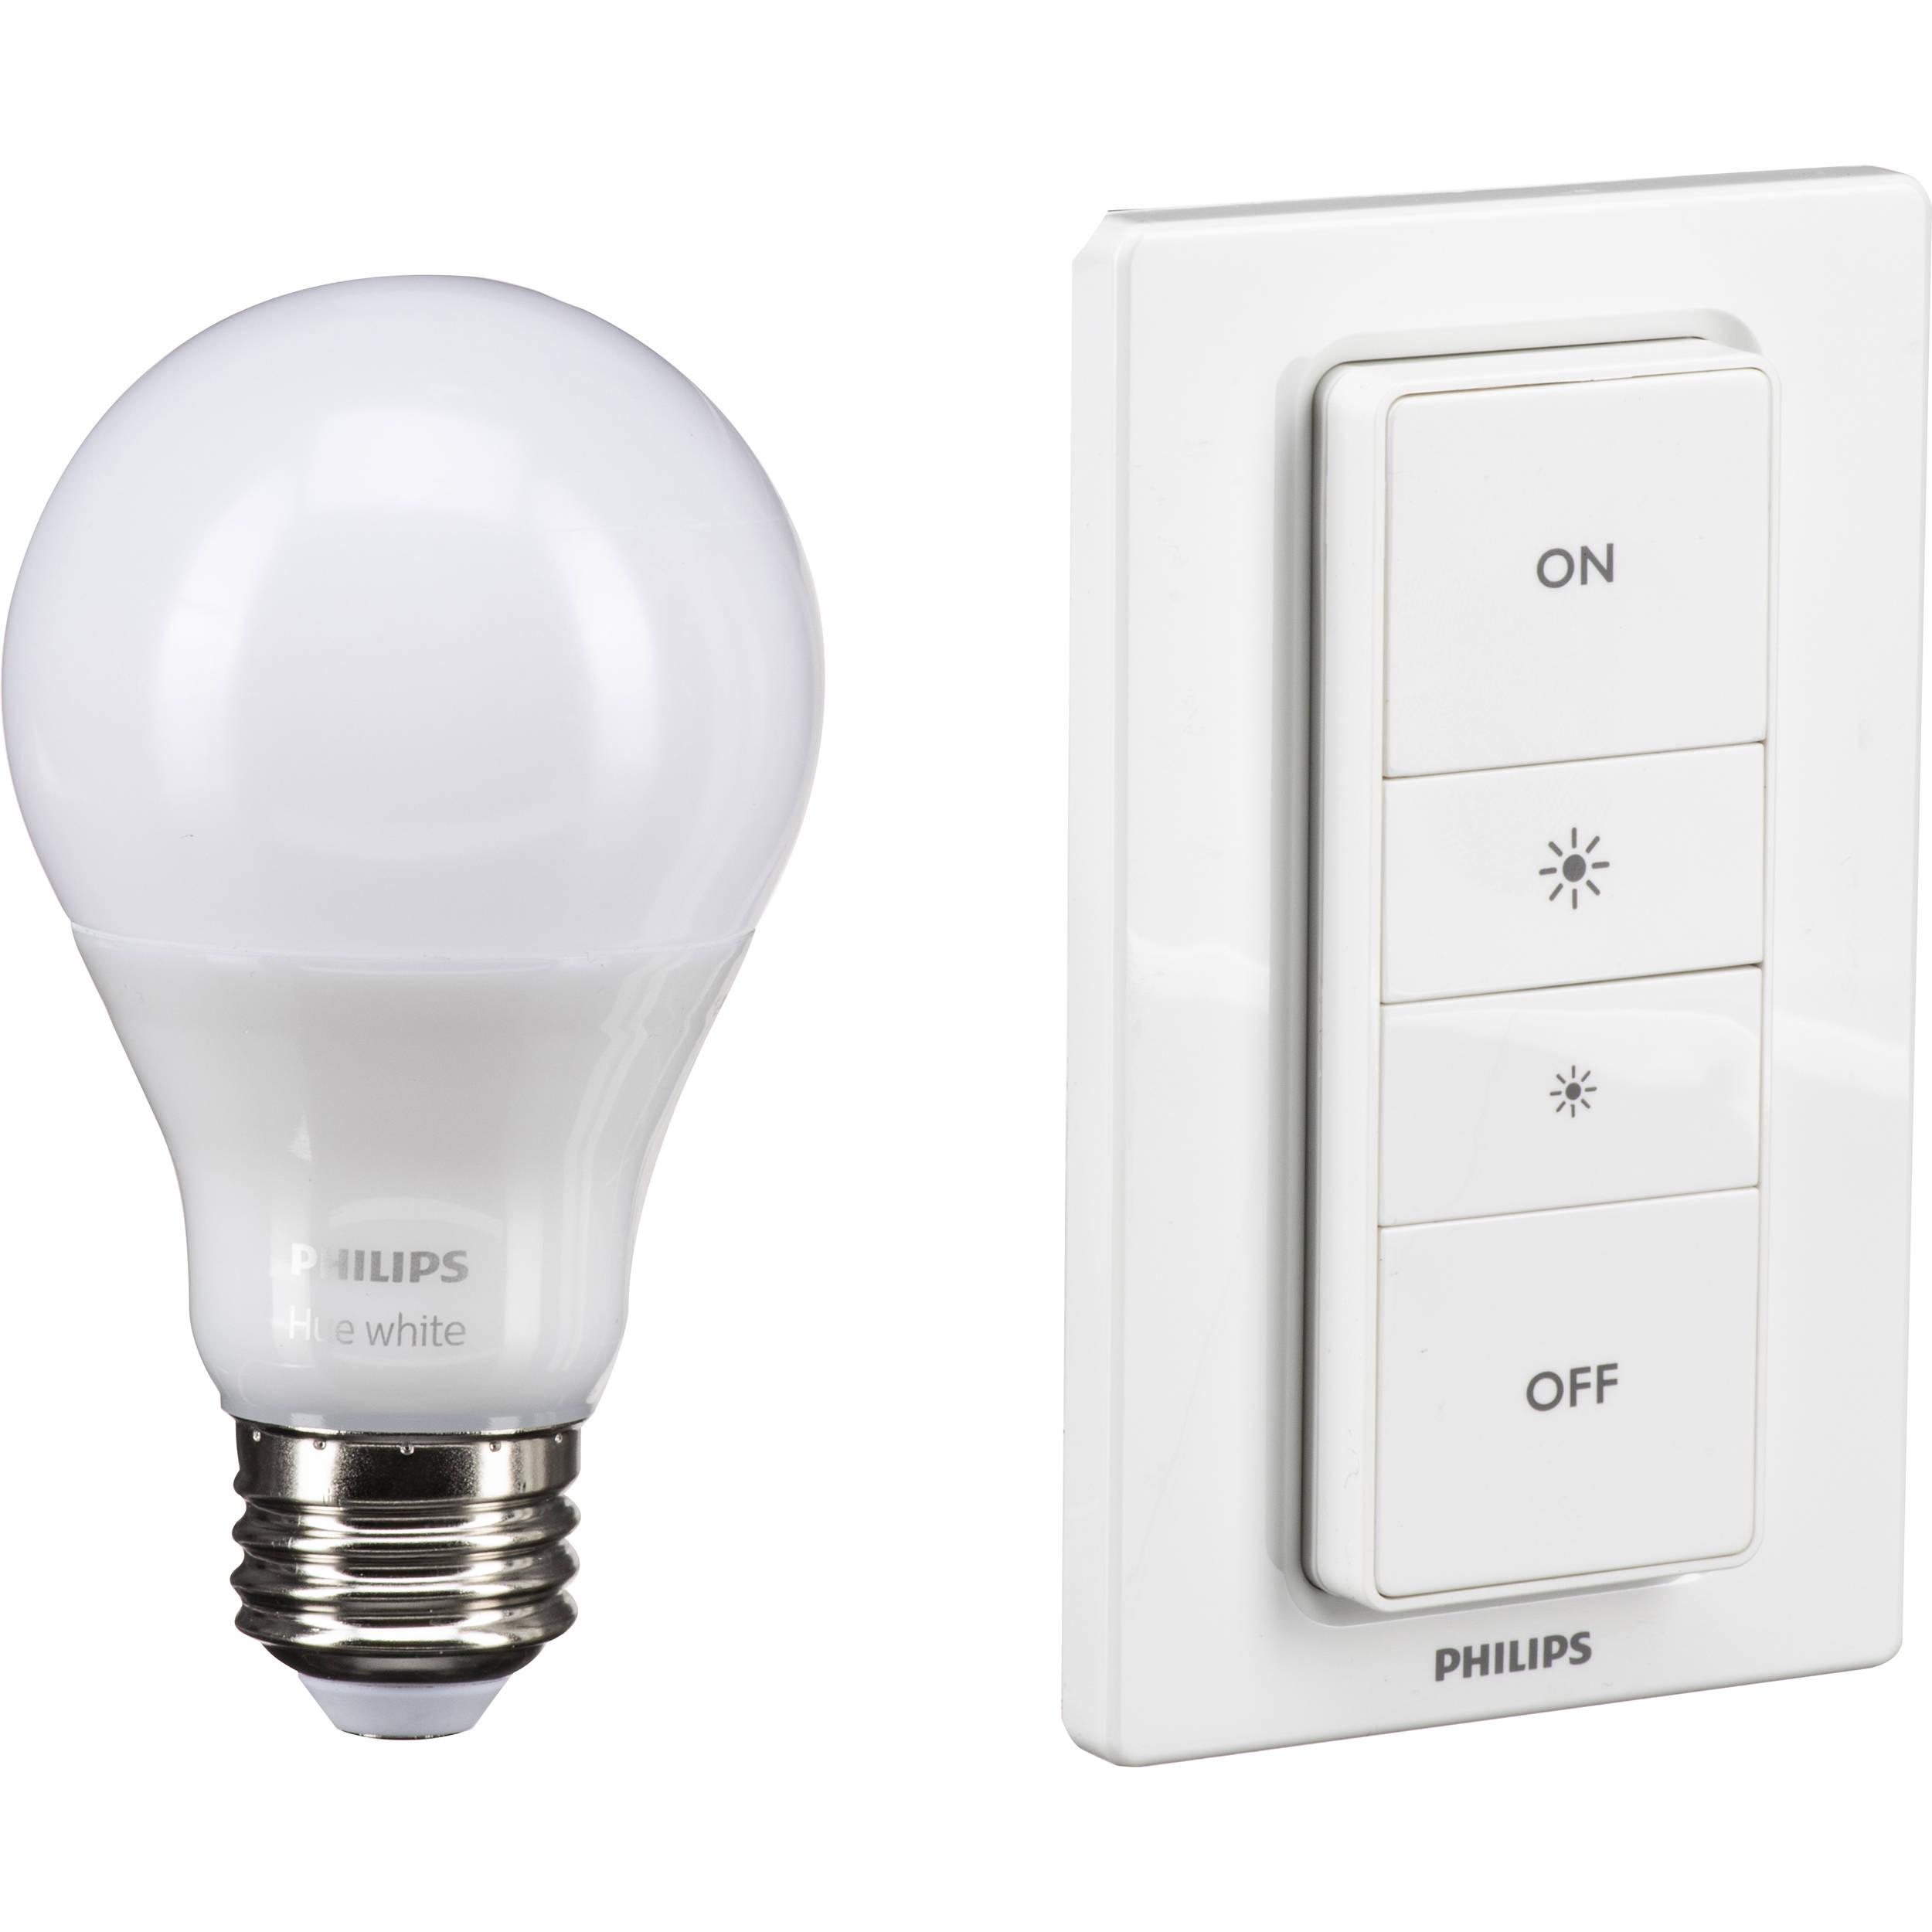 Philips Hue A19 Wireless Dimming Kit (White)